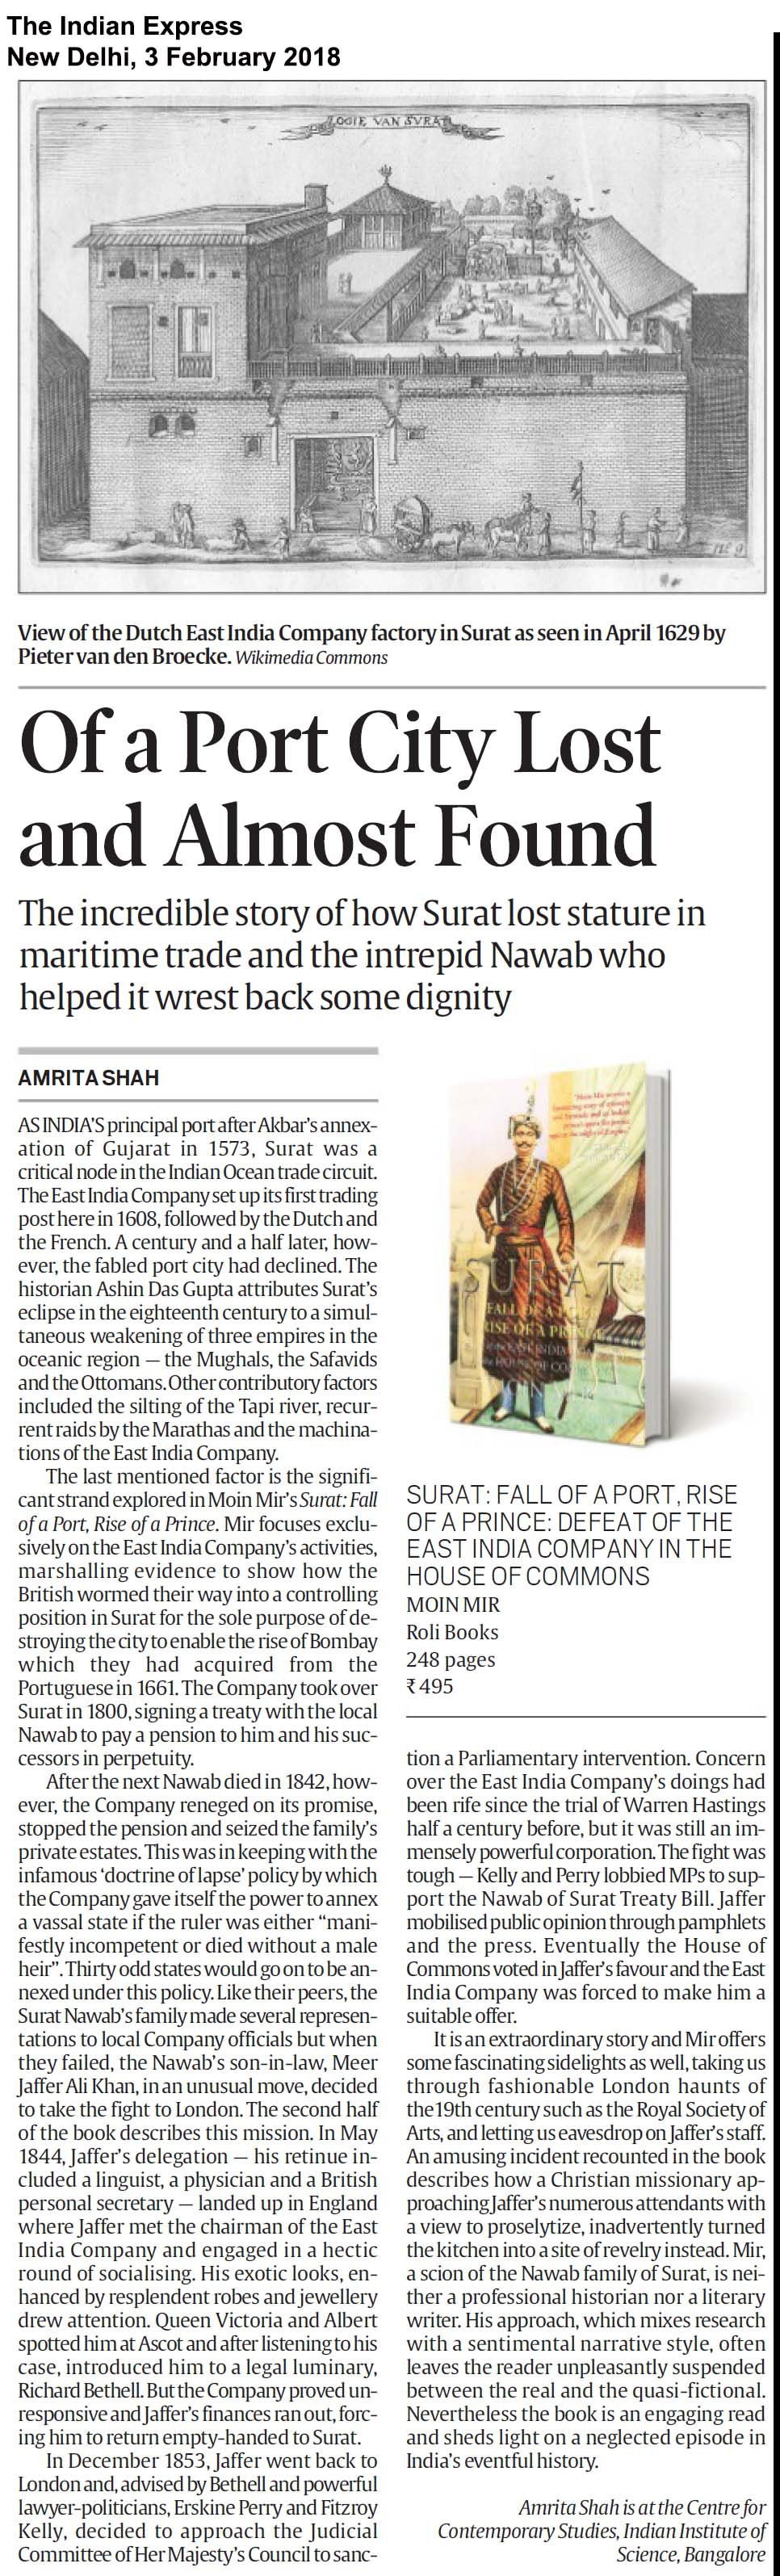 Surat: Fall of a Port, Rise of a Prince<br><span>The Indian Express, New Delhi</span>